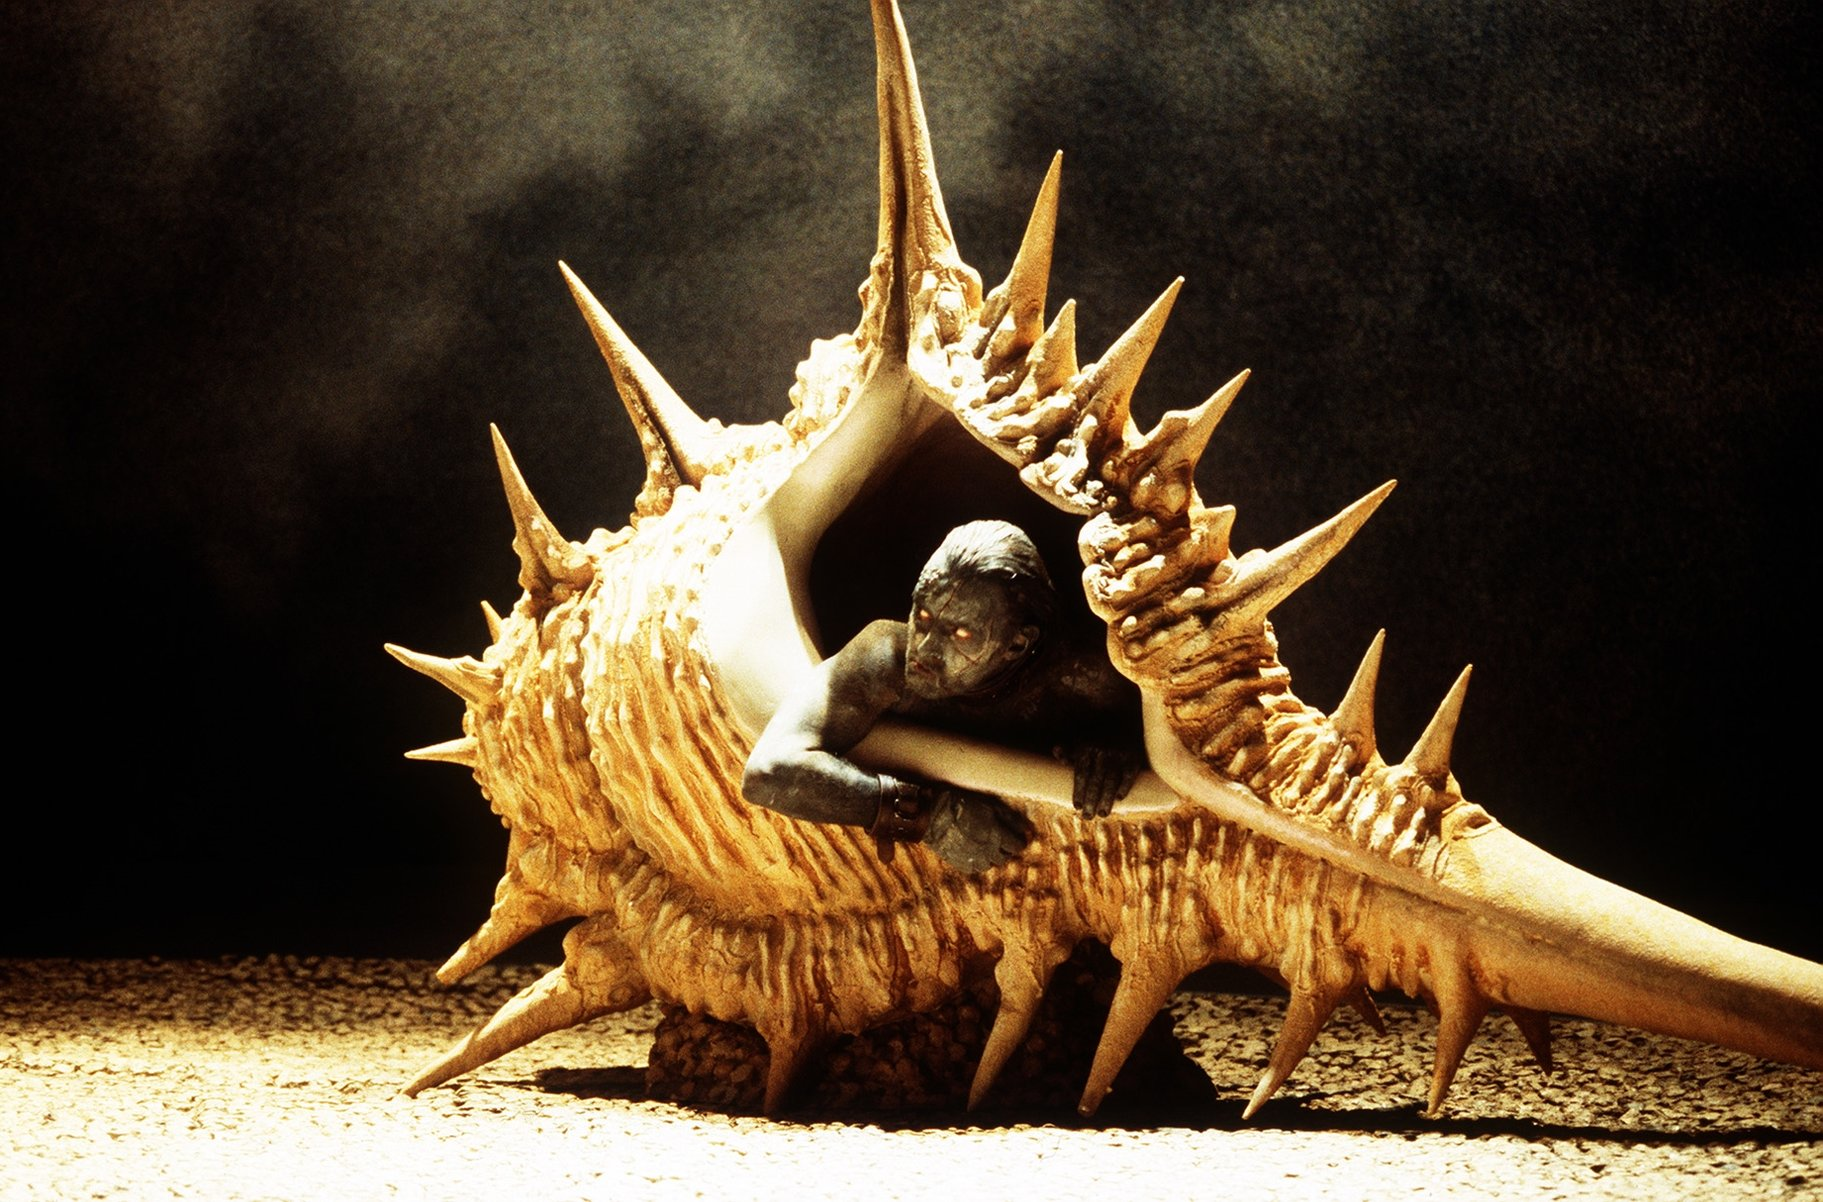 Robert Glenister as Caliban, sitting in a large shell.